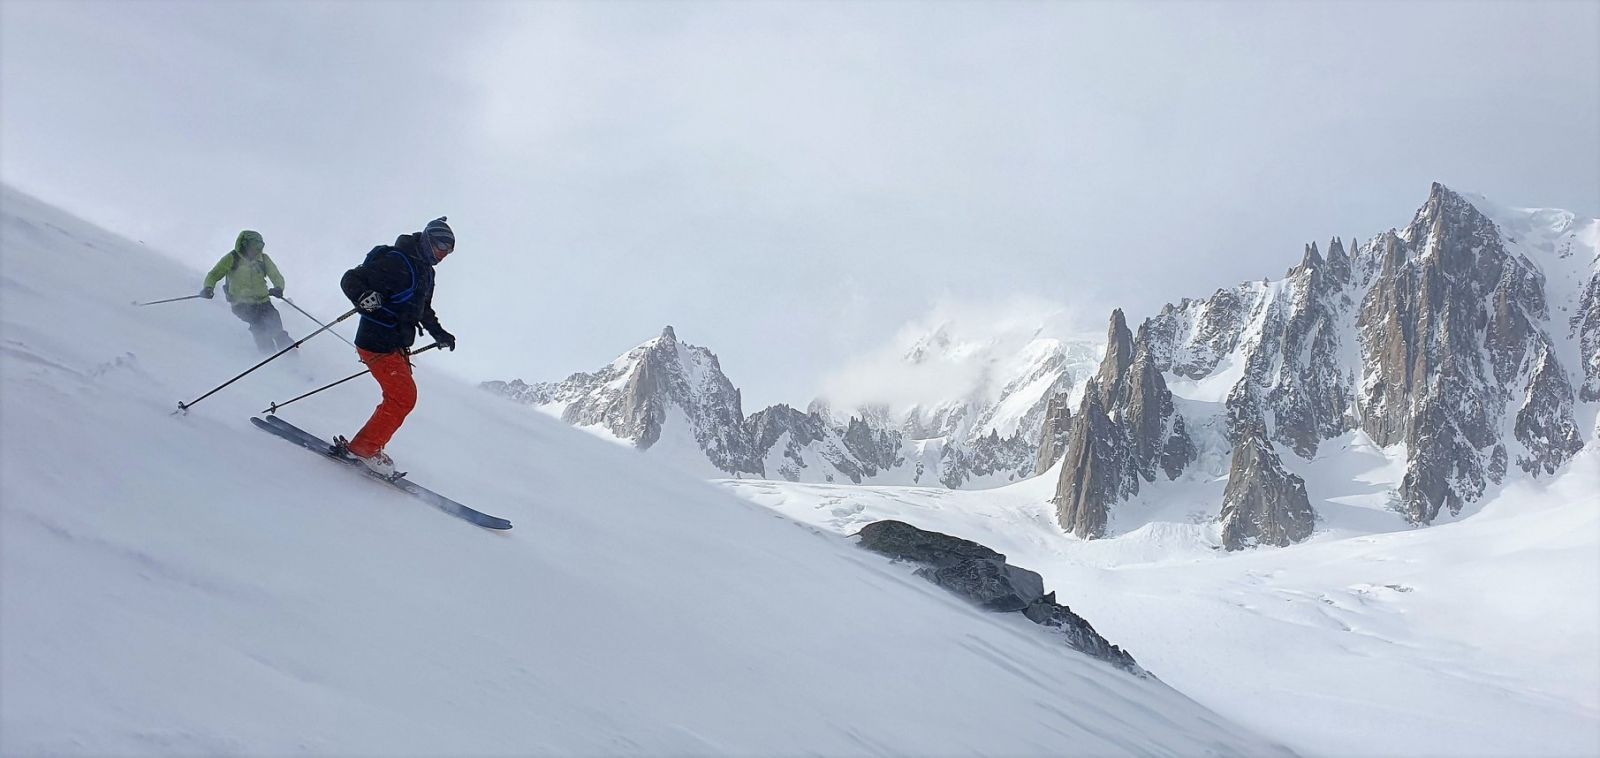 vallee blanche mountain guide